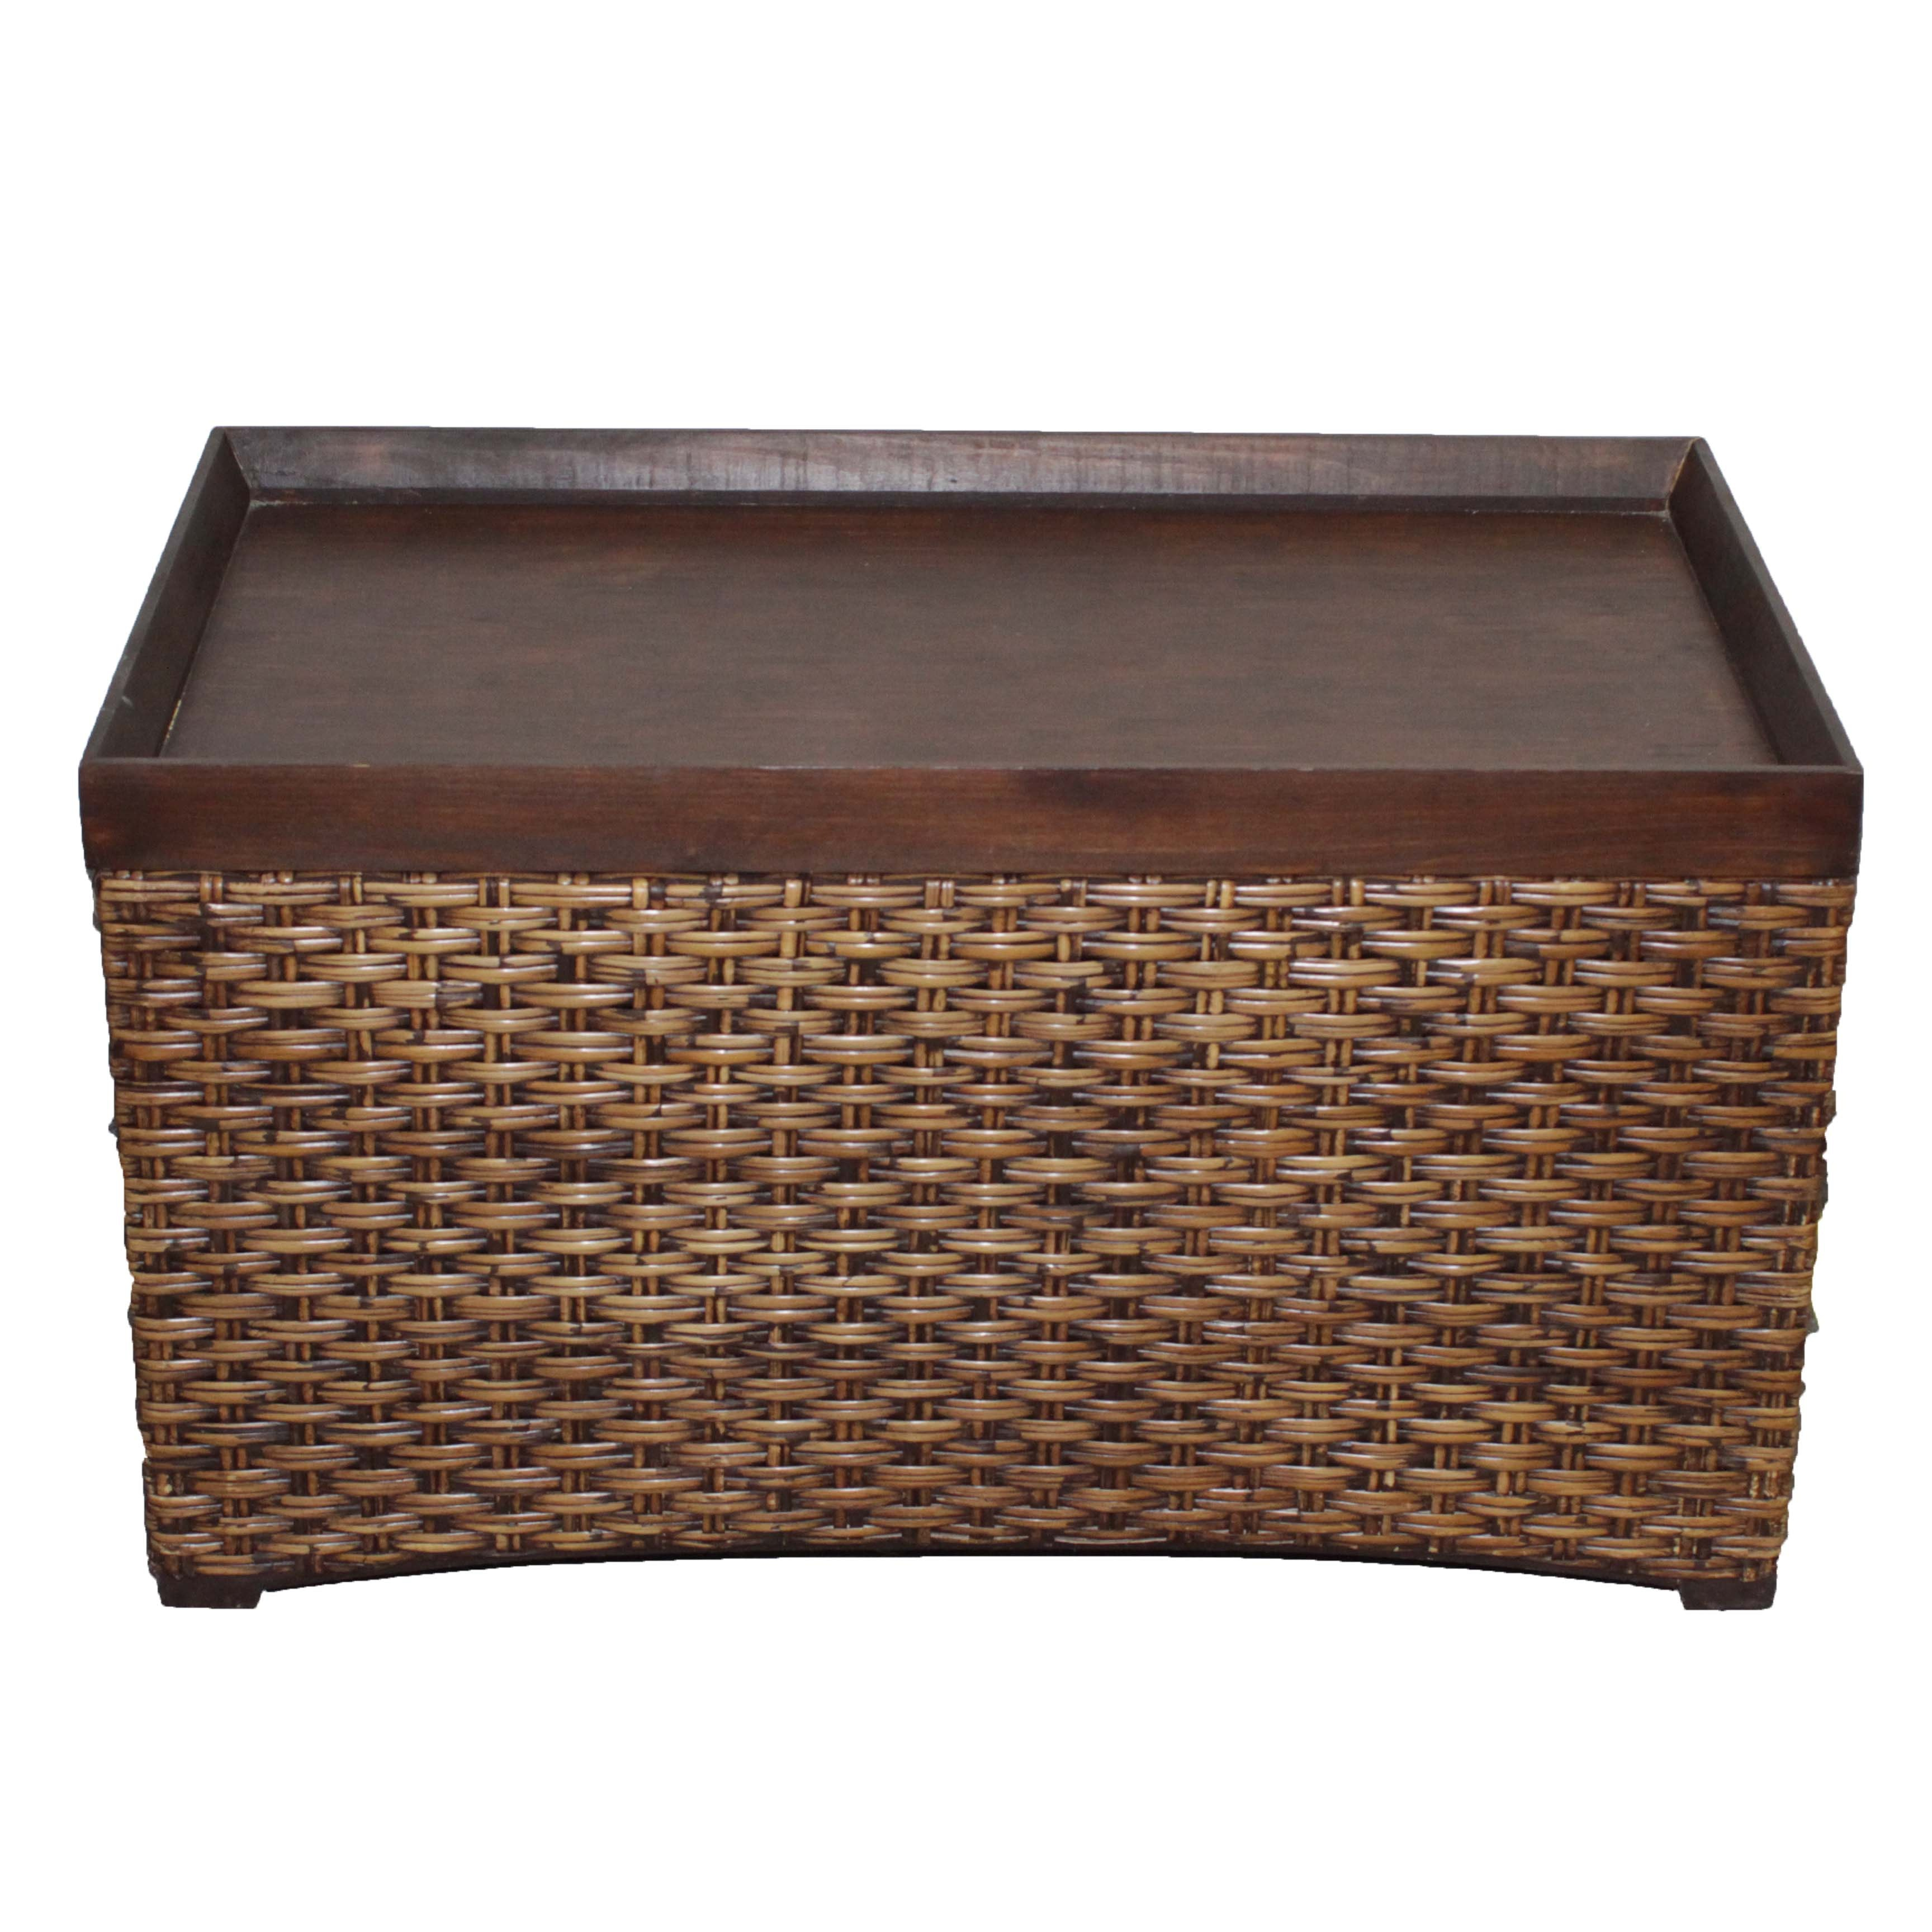 Contemporary Rattan Trunk with a Bamboo Lid